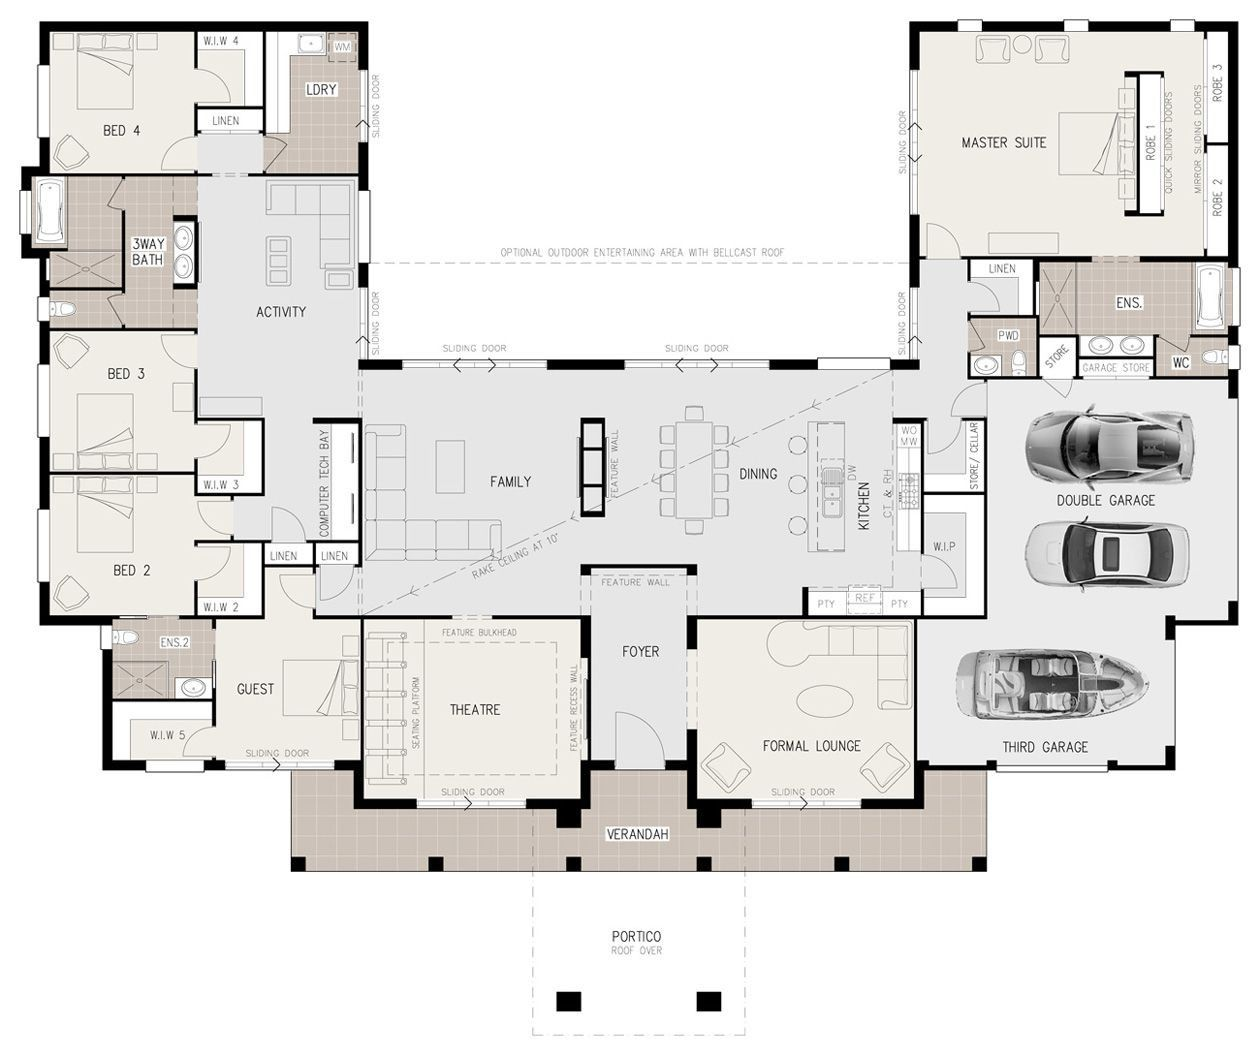 11 Awesome C Shaped House Floor Plan Pics Courtyard House Plans Dream House Plans House Plans